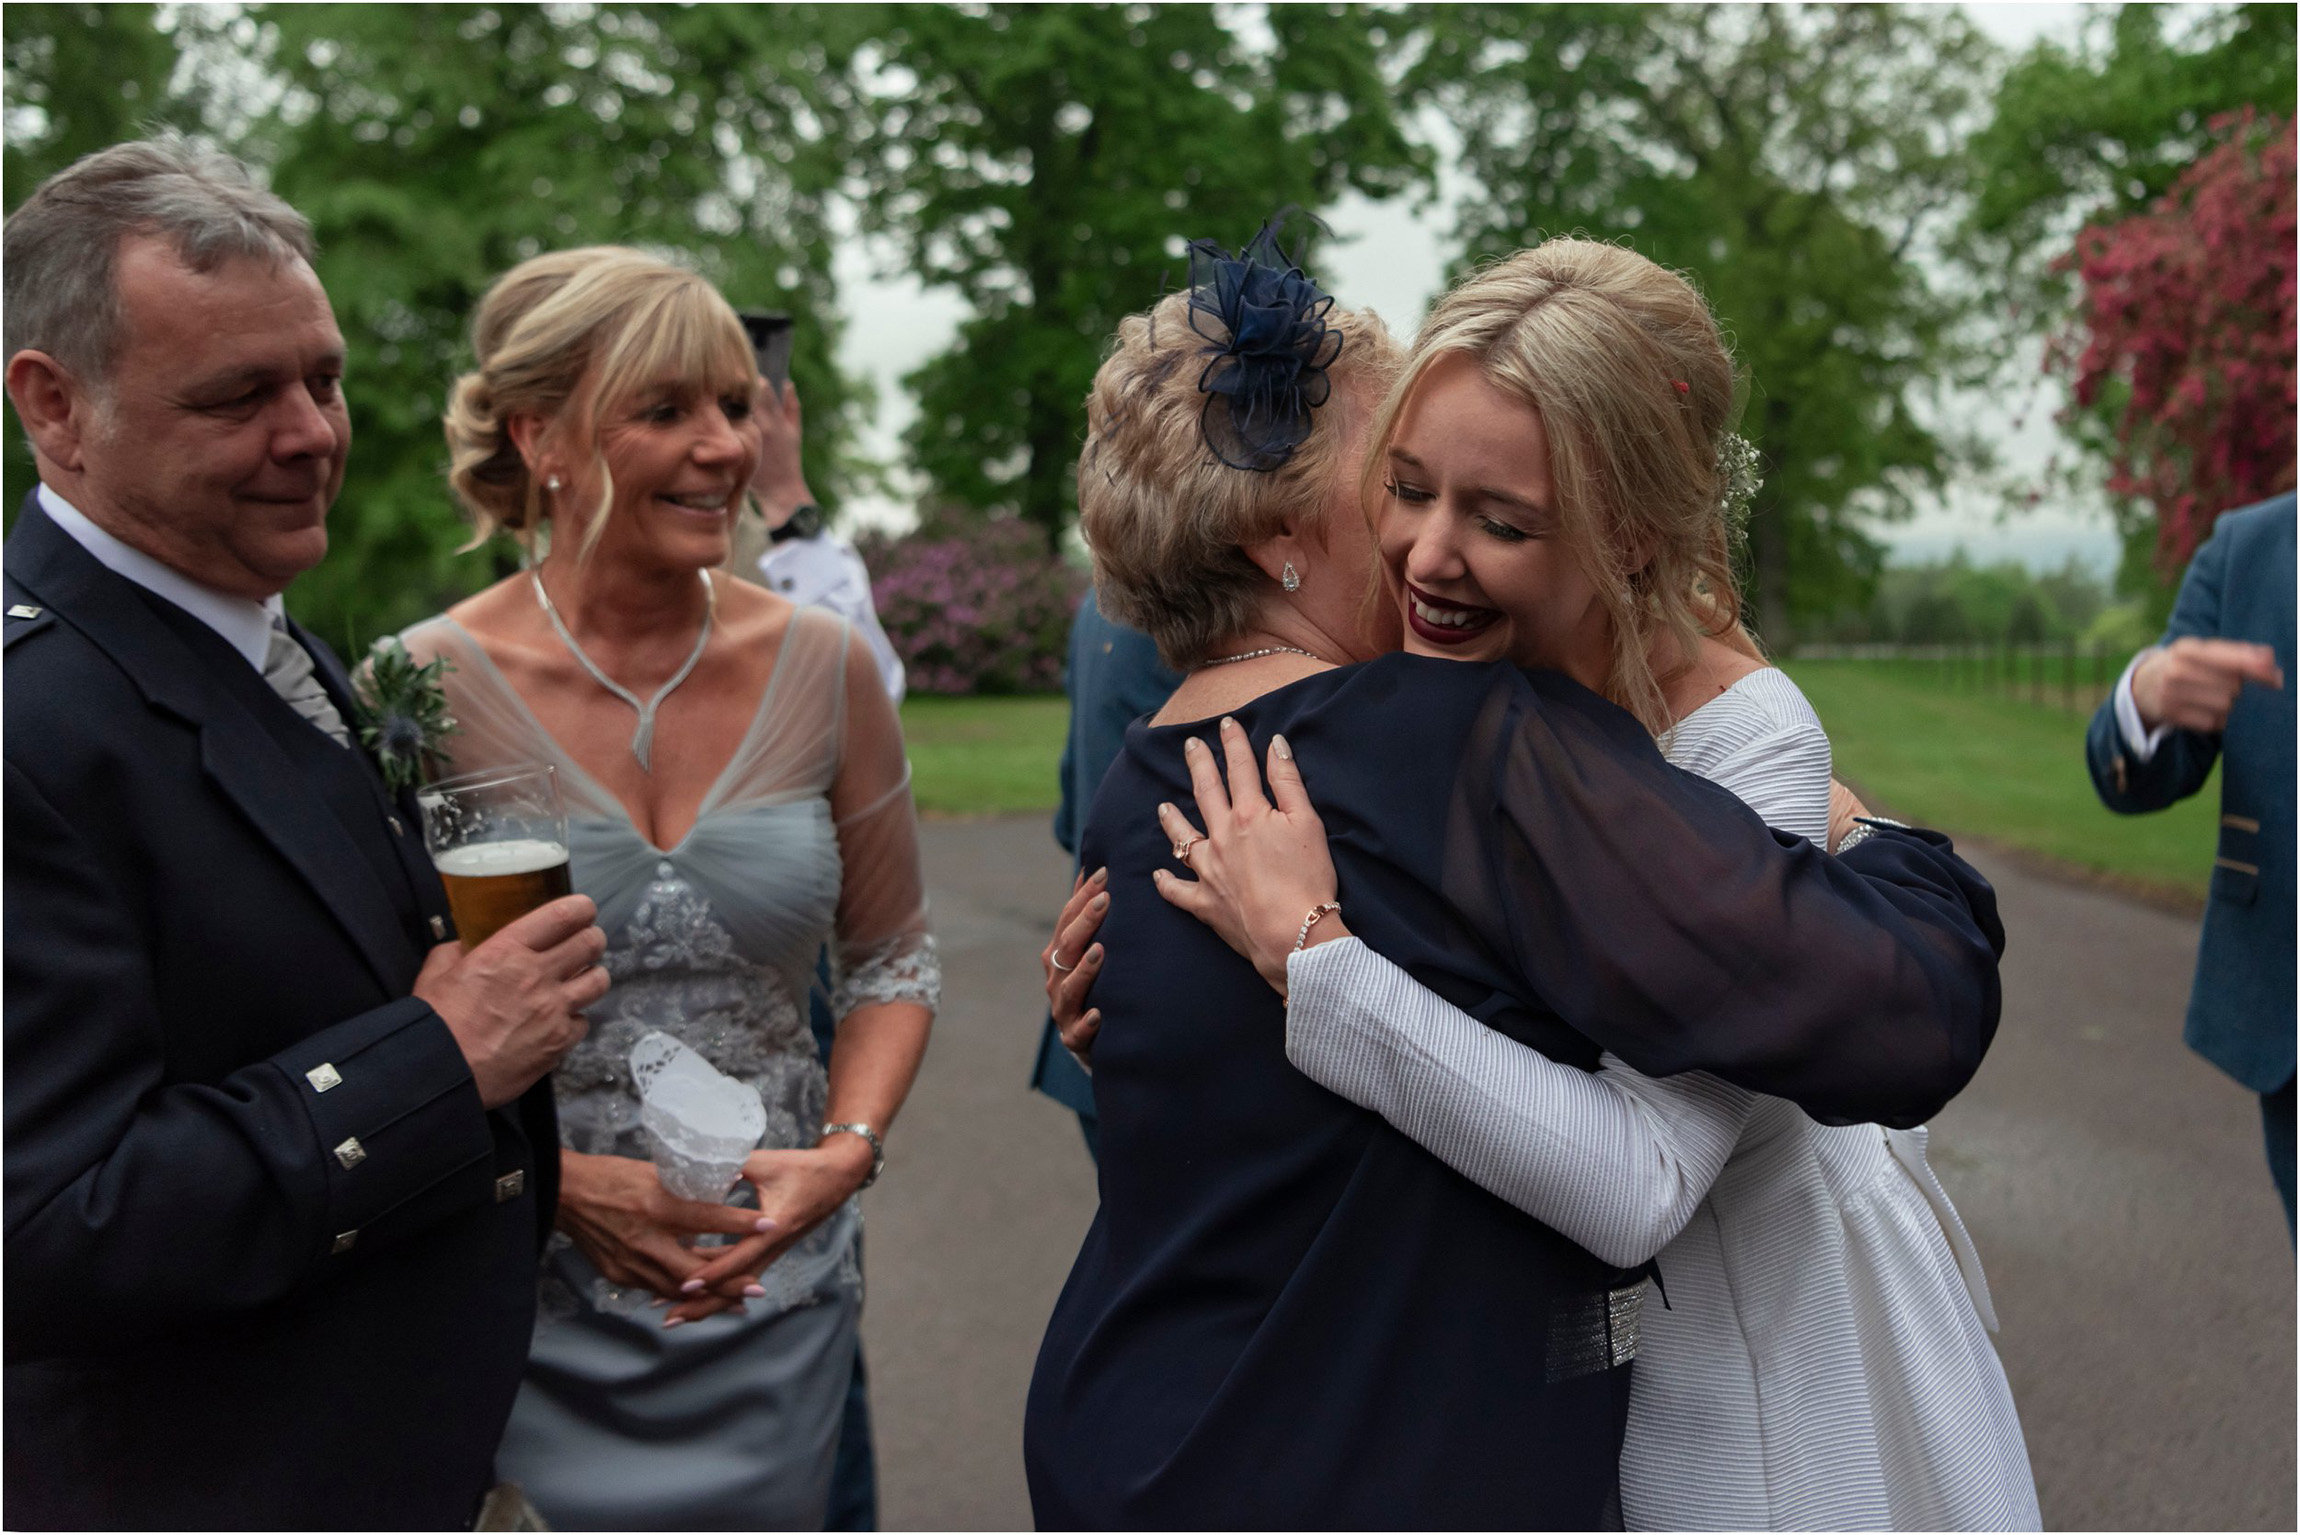 ©FianderFoto_Scotland Wedding Photographer_Errol Park Estate_Janine_Karl_168.jpg